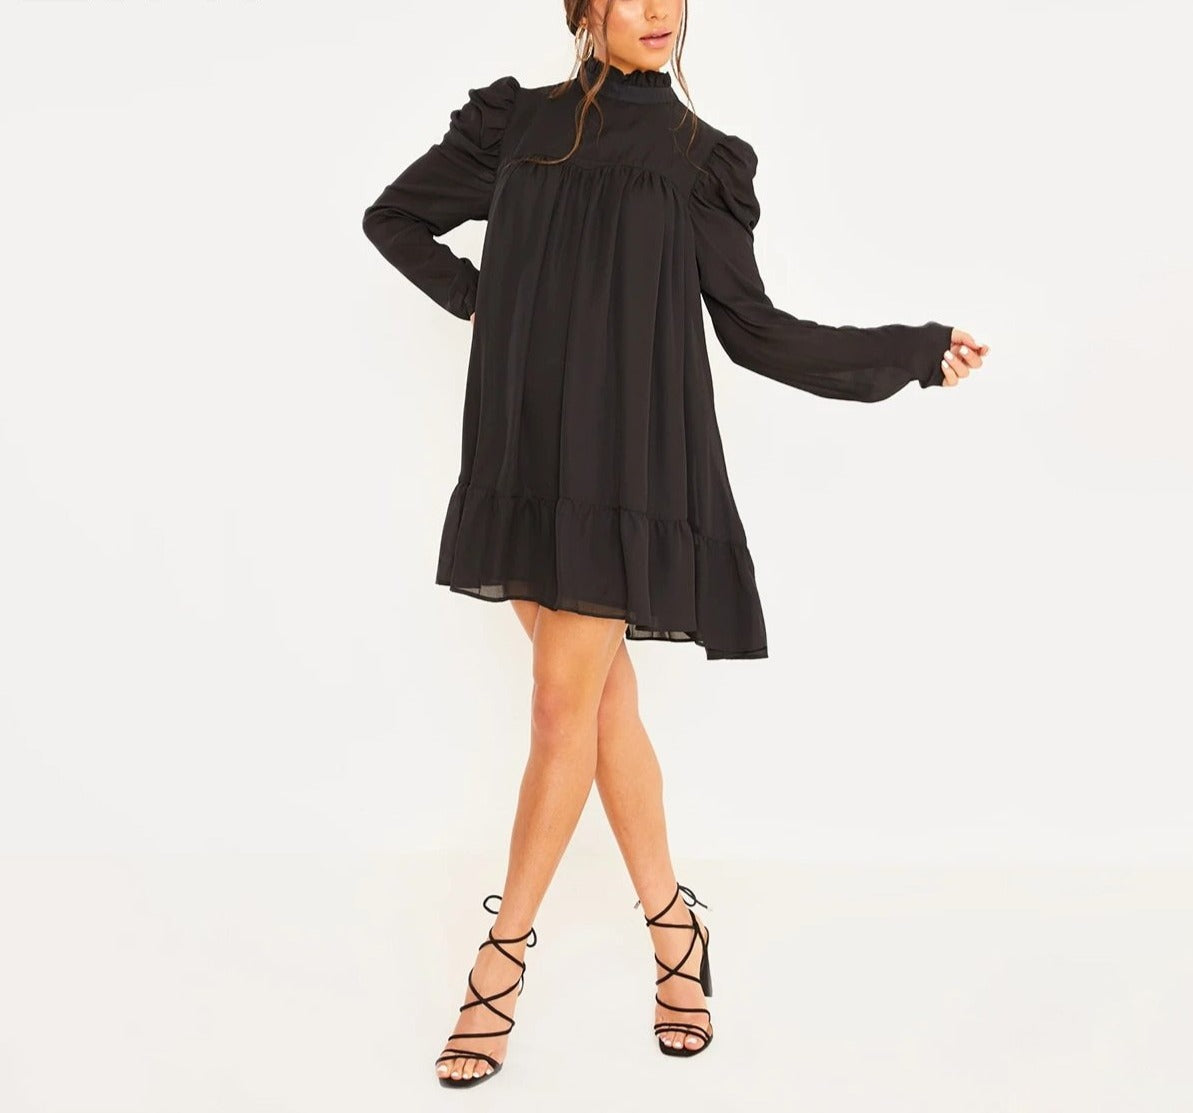 Puff Sleeve Turtleneck Ruffles Chiffon Dress - LEPITON